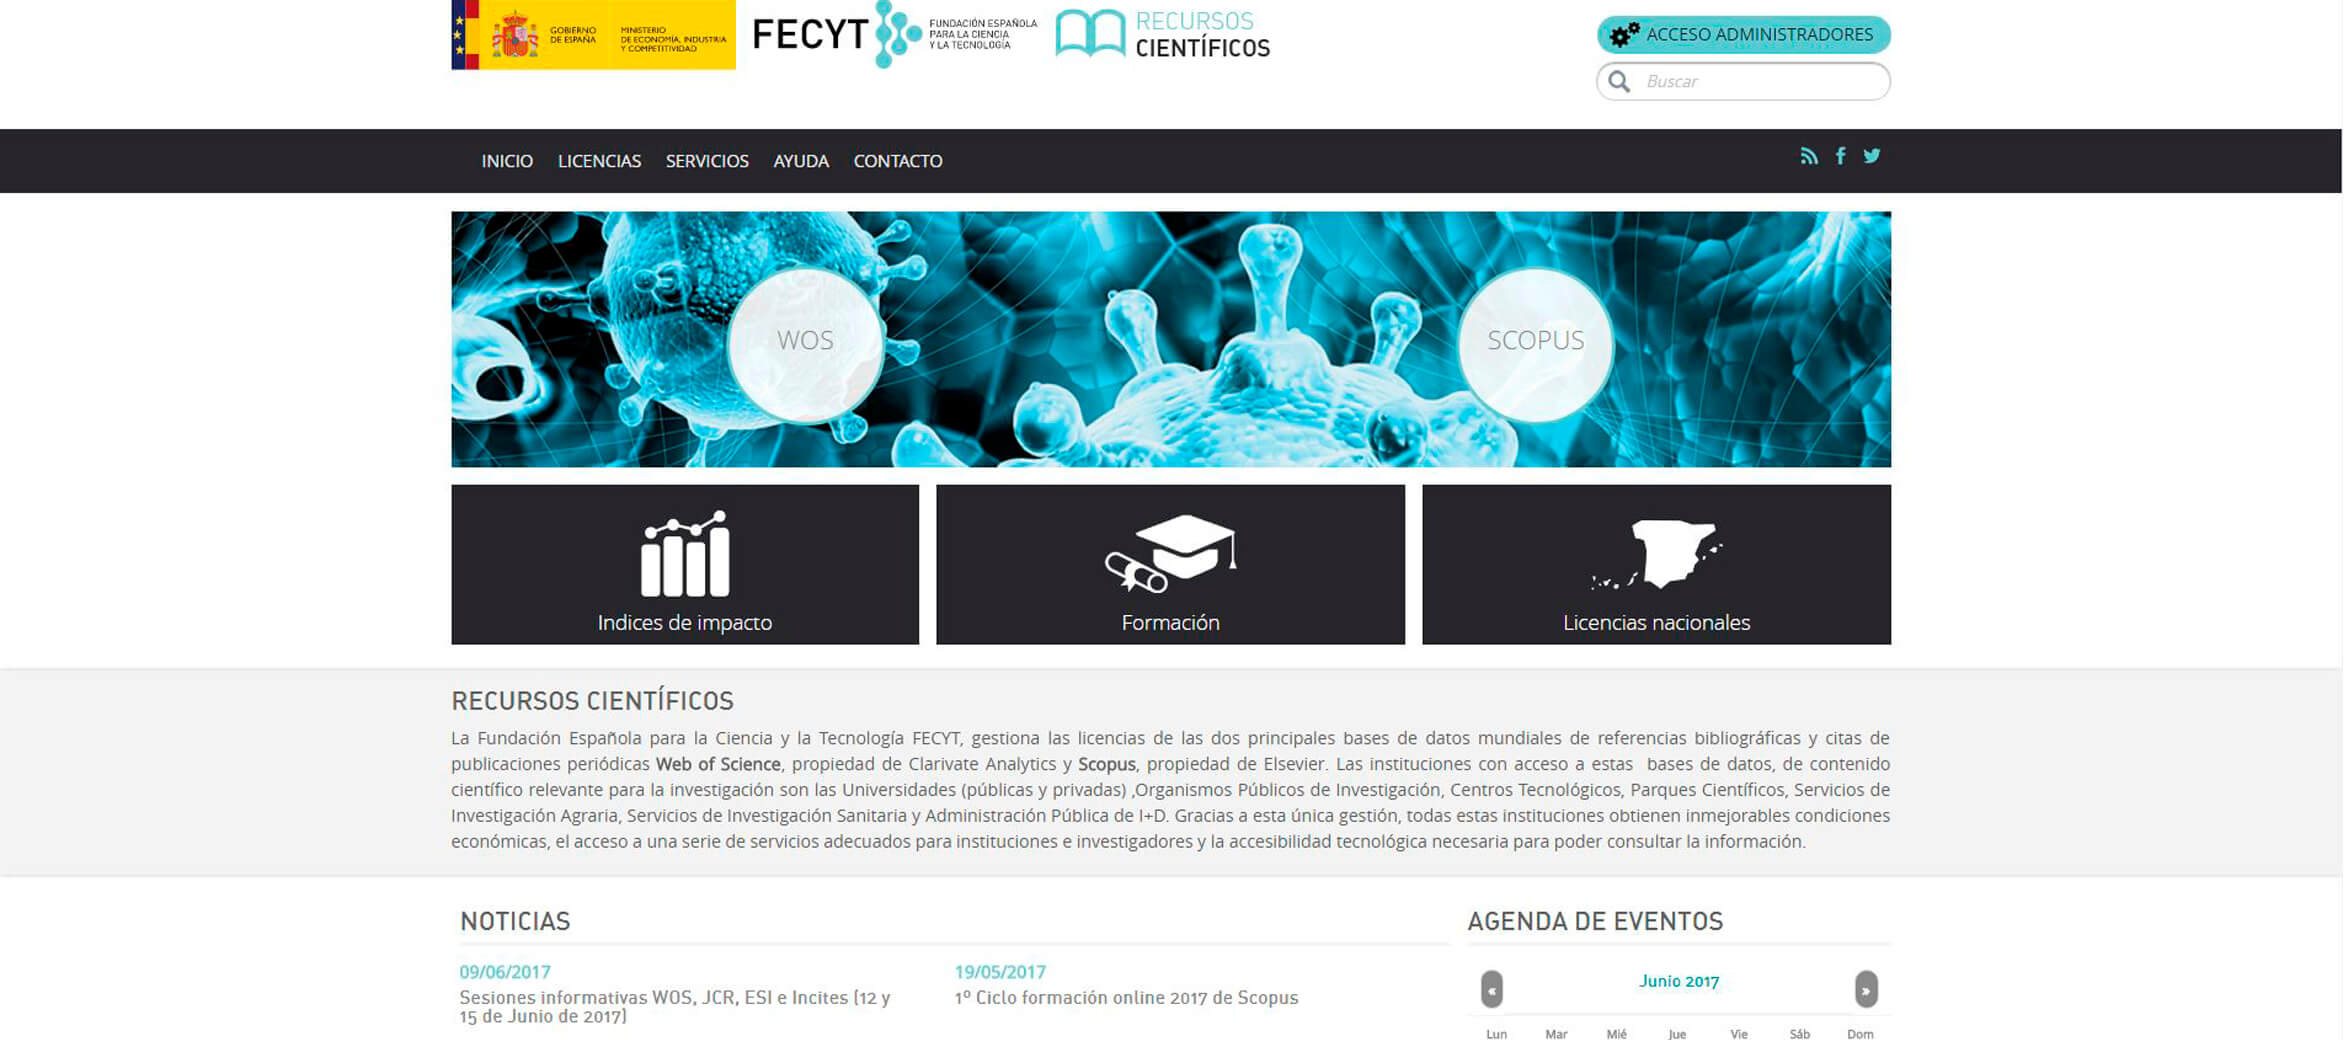 Emergya al frente de la nueva web para la Web of Science de Fecyt